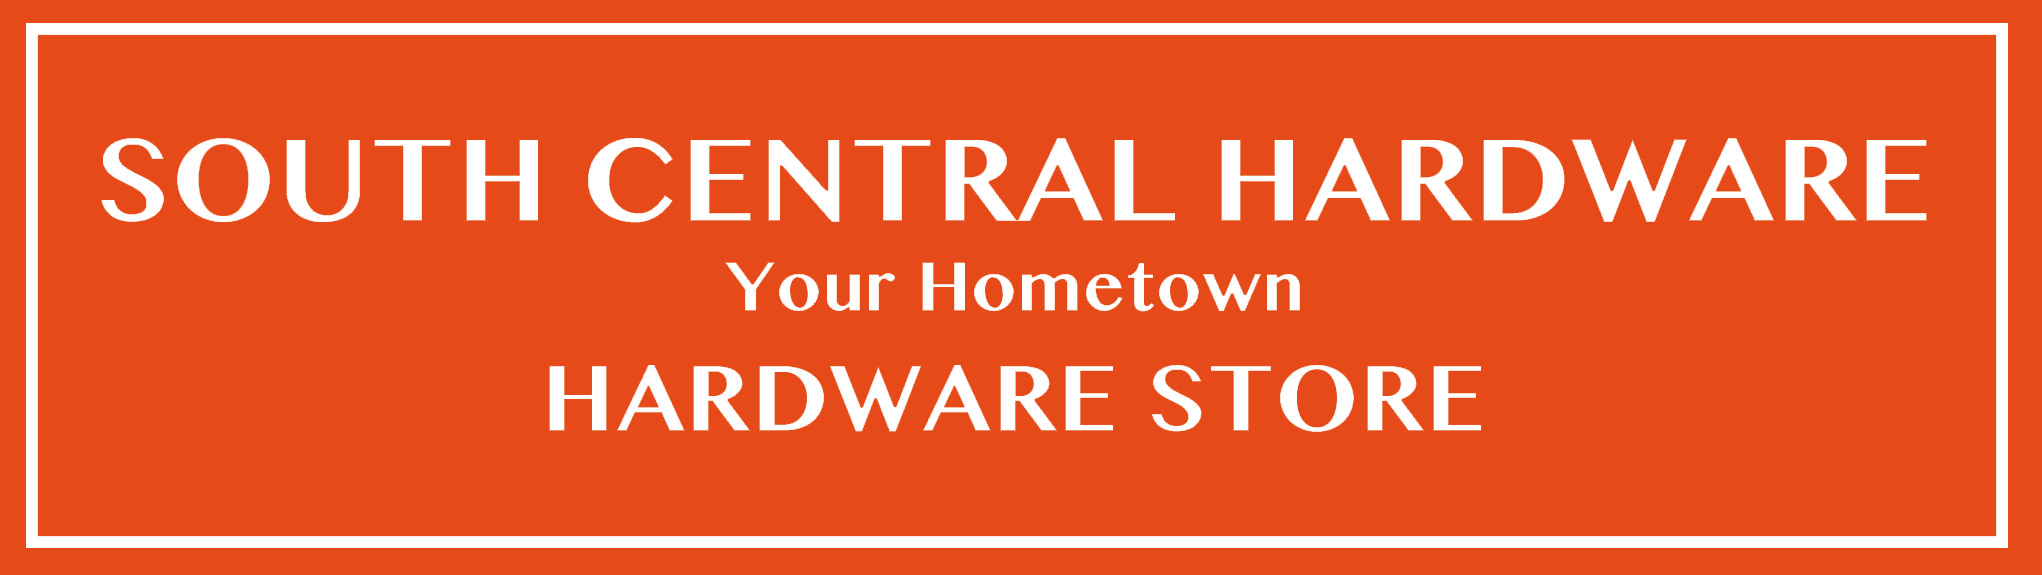 South Central Hardware